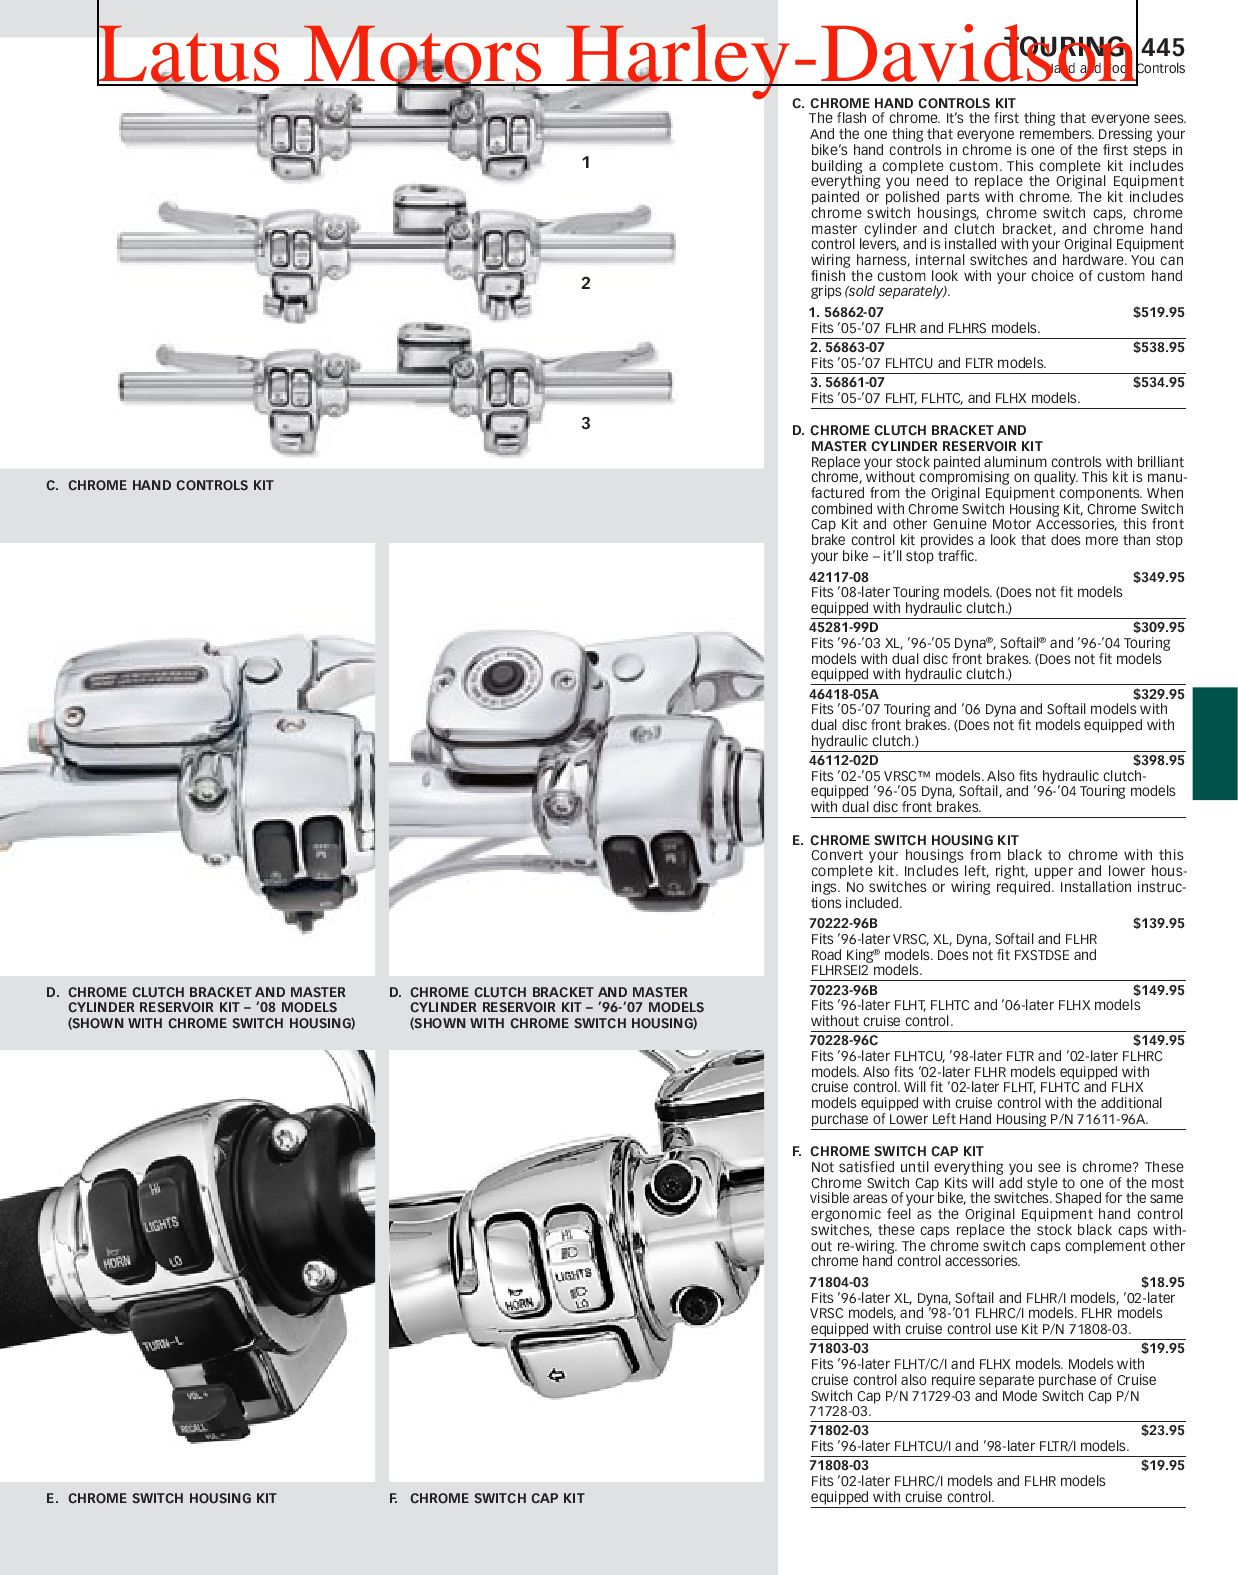 Part 2 Harley-Davidson Parts and Accessories Catalog by Harley-Davidson of  Portland - issuu